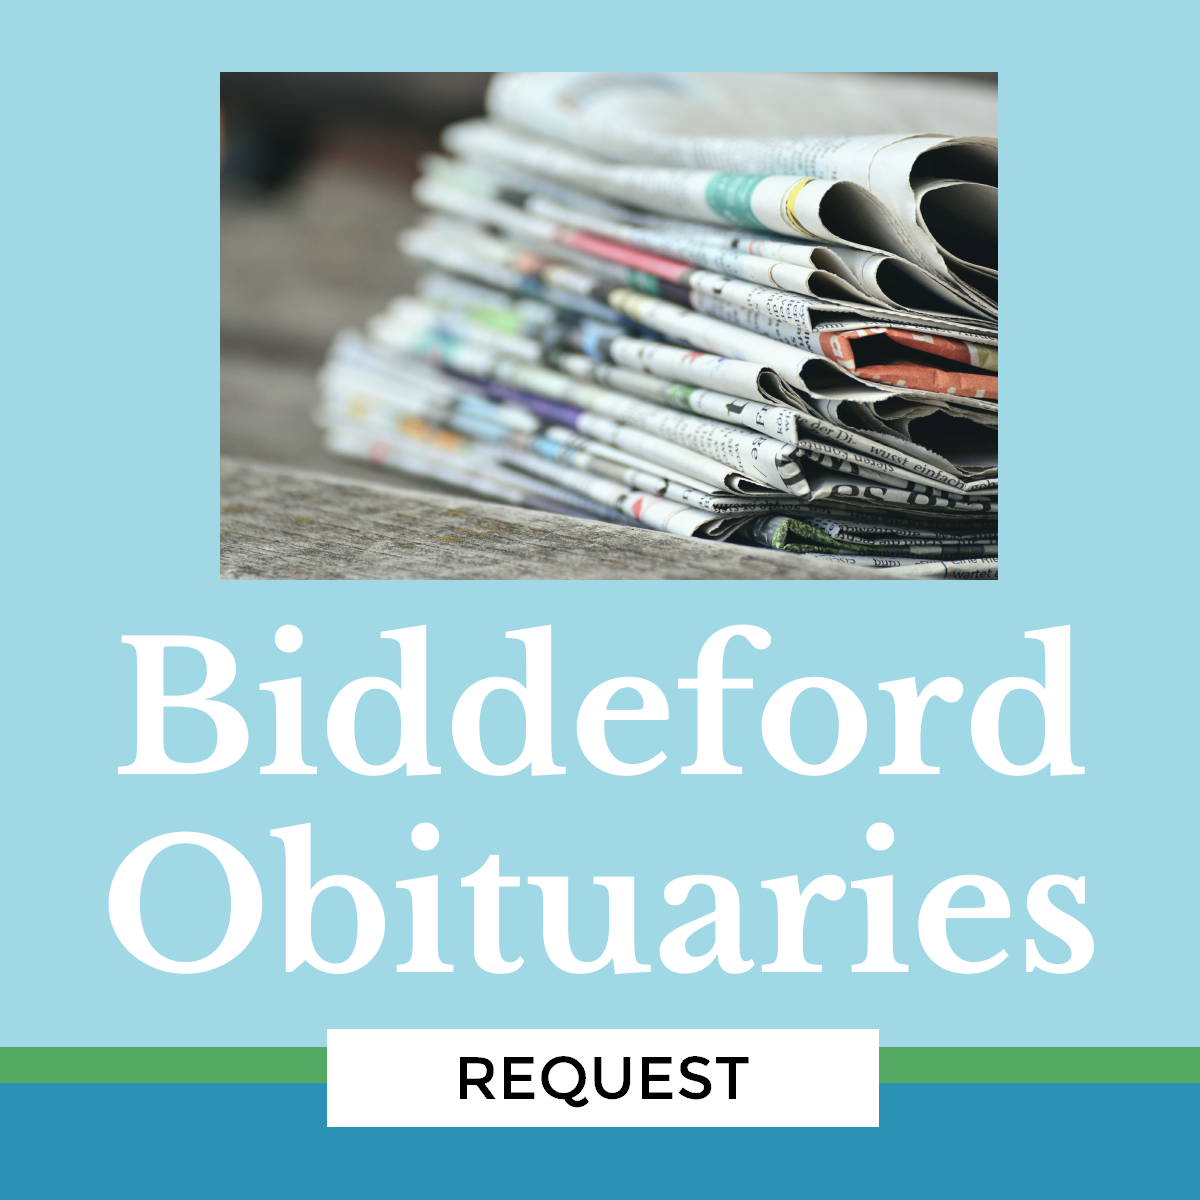 Biddeford obituary request